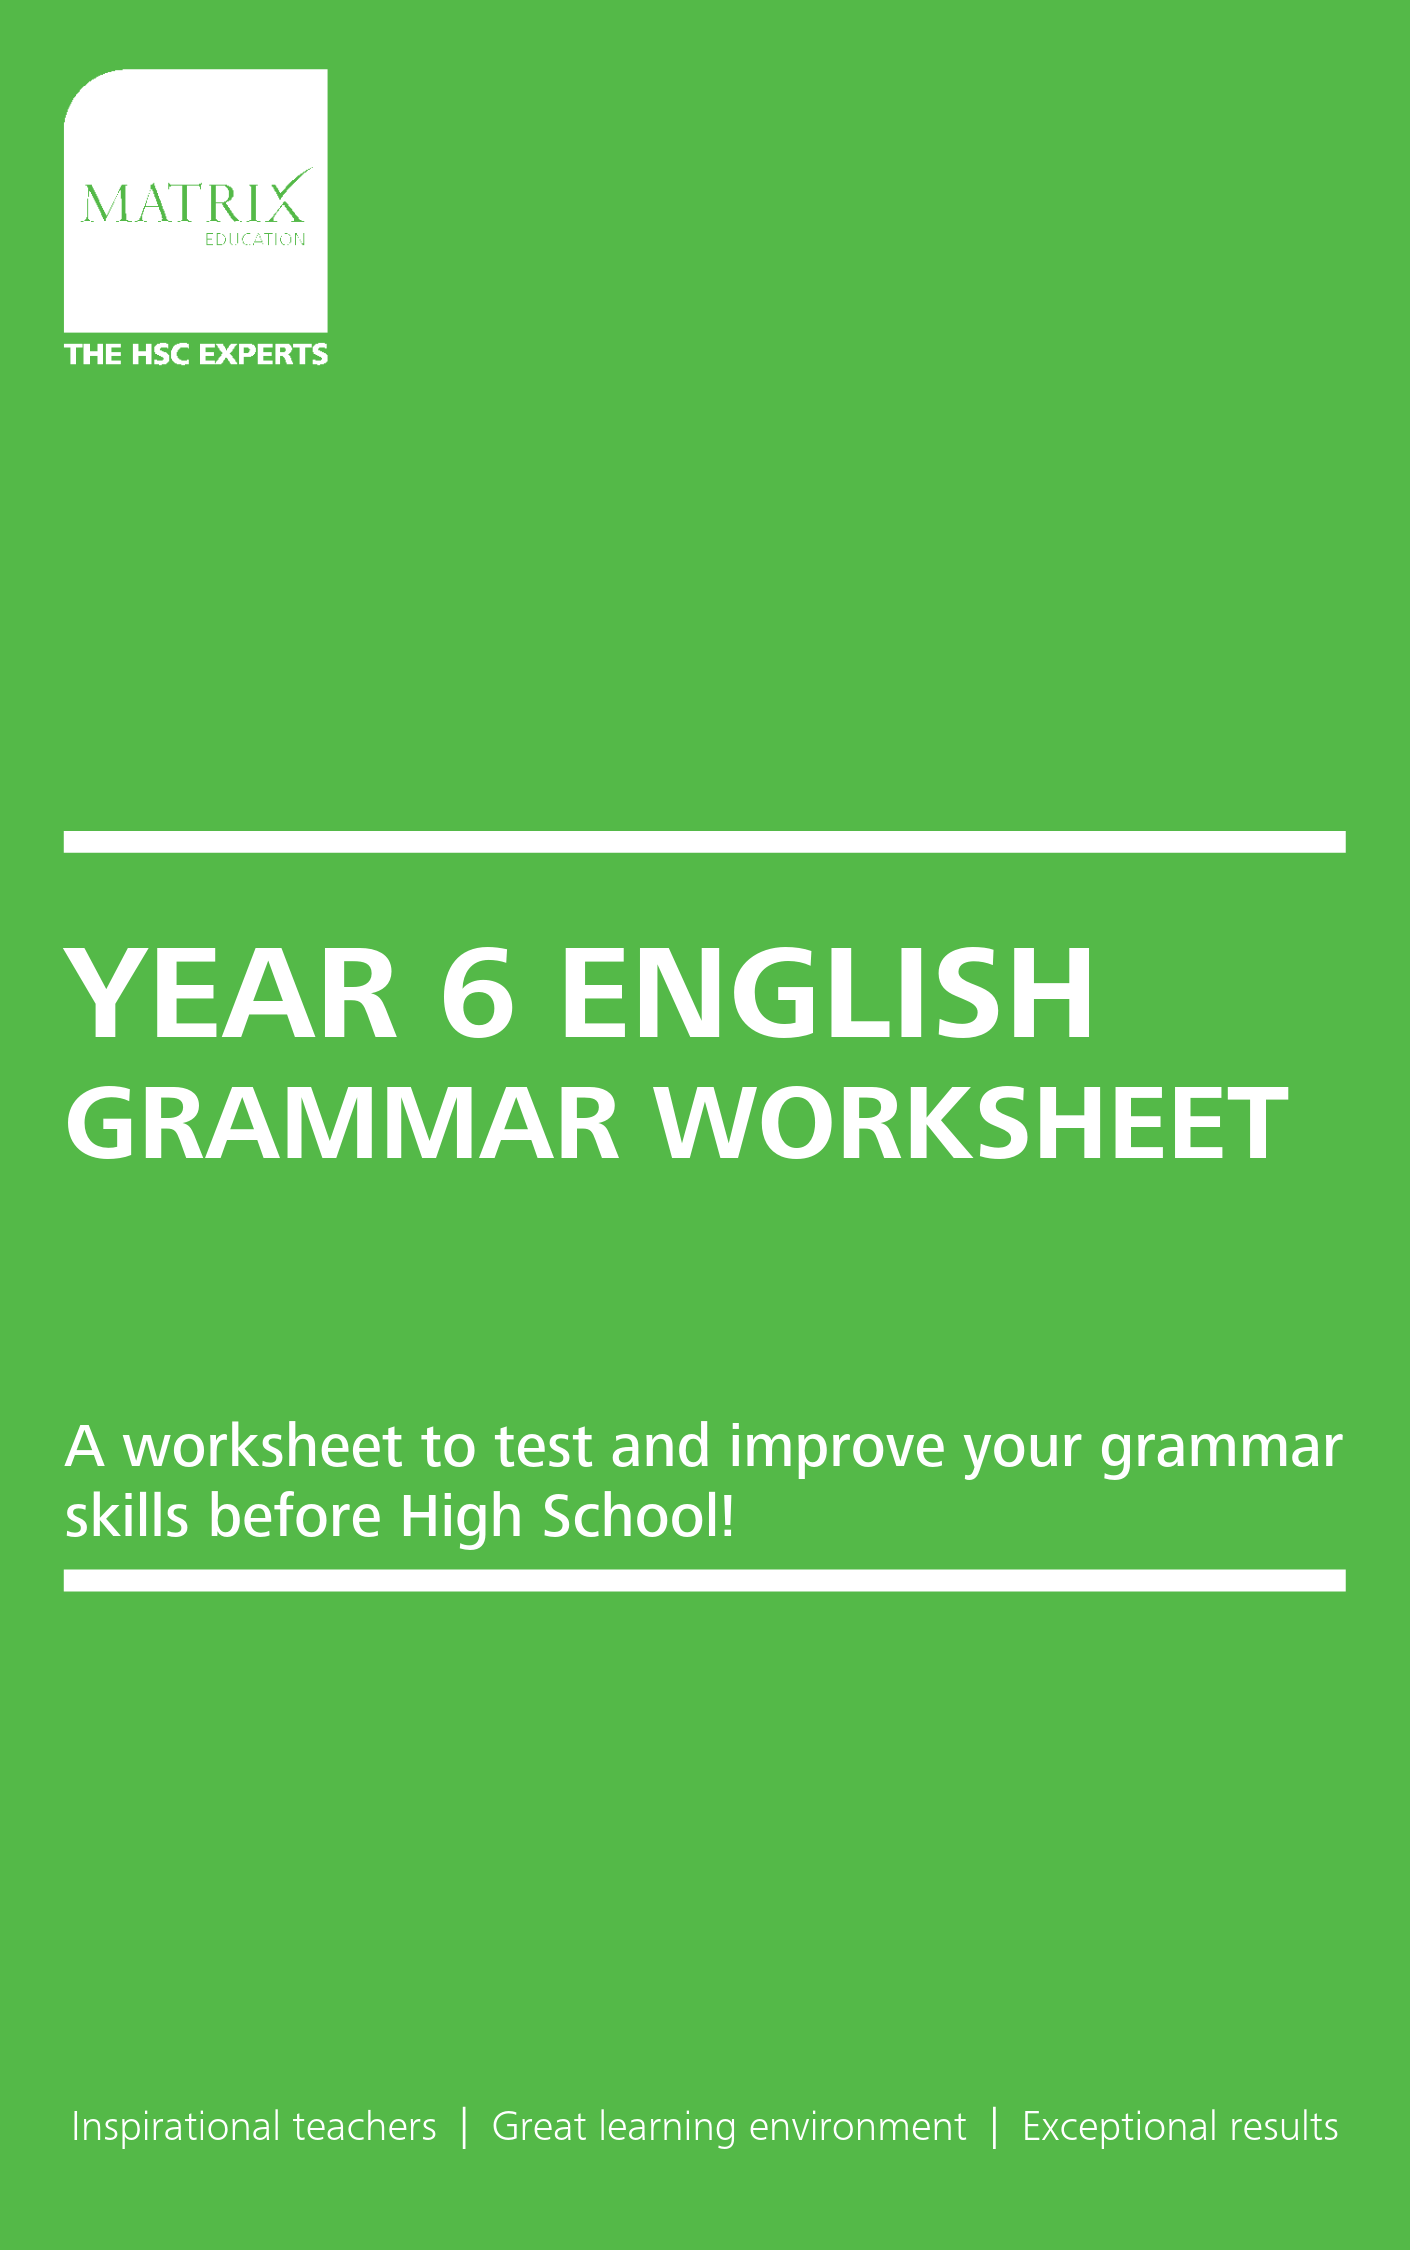 7 Grammatical Mistakes Year 6 Students Must Fix